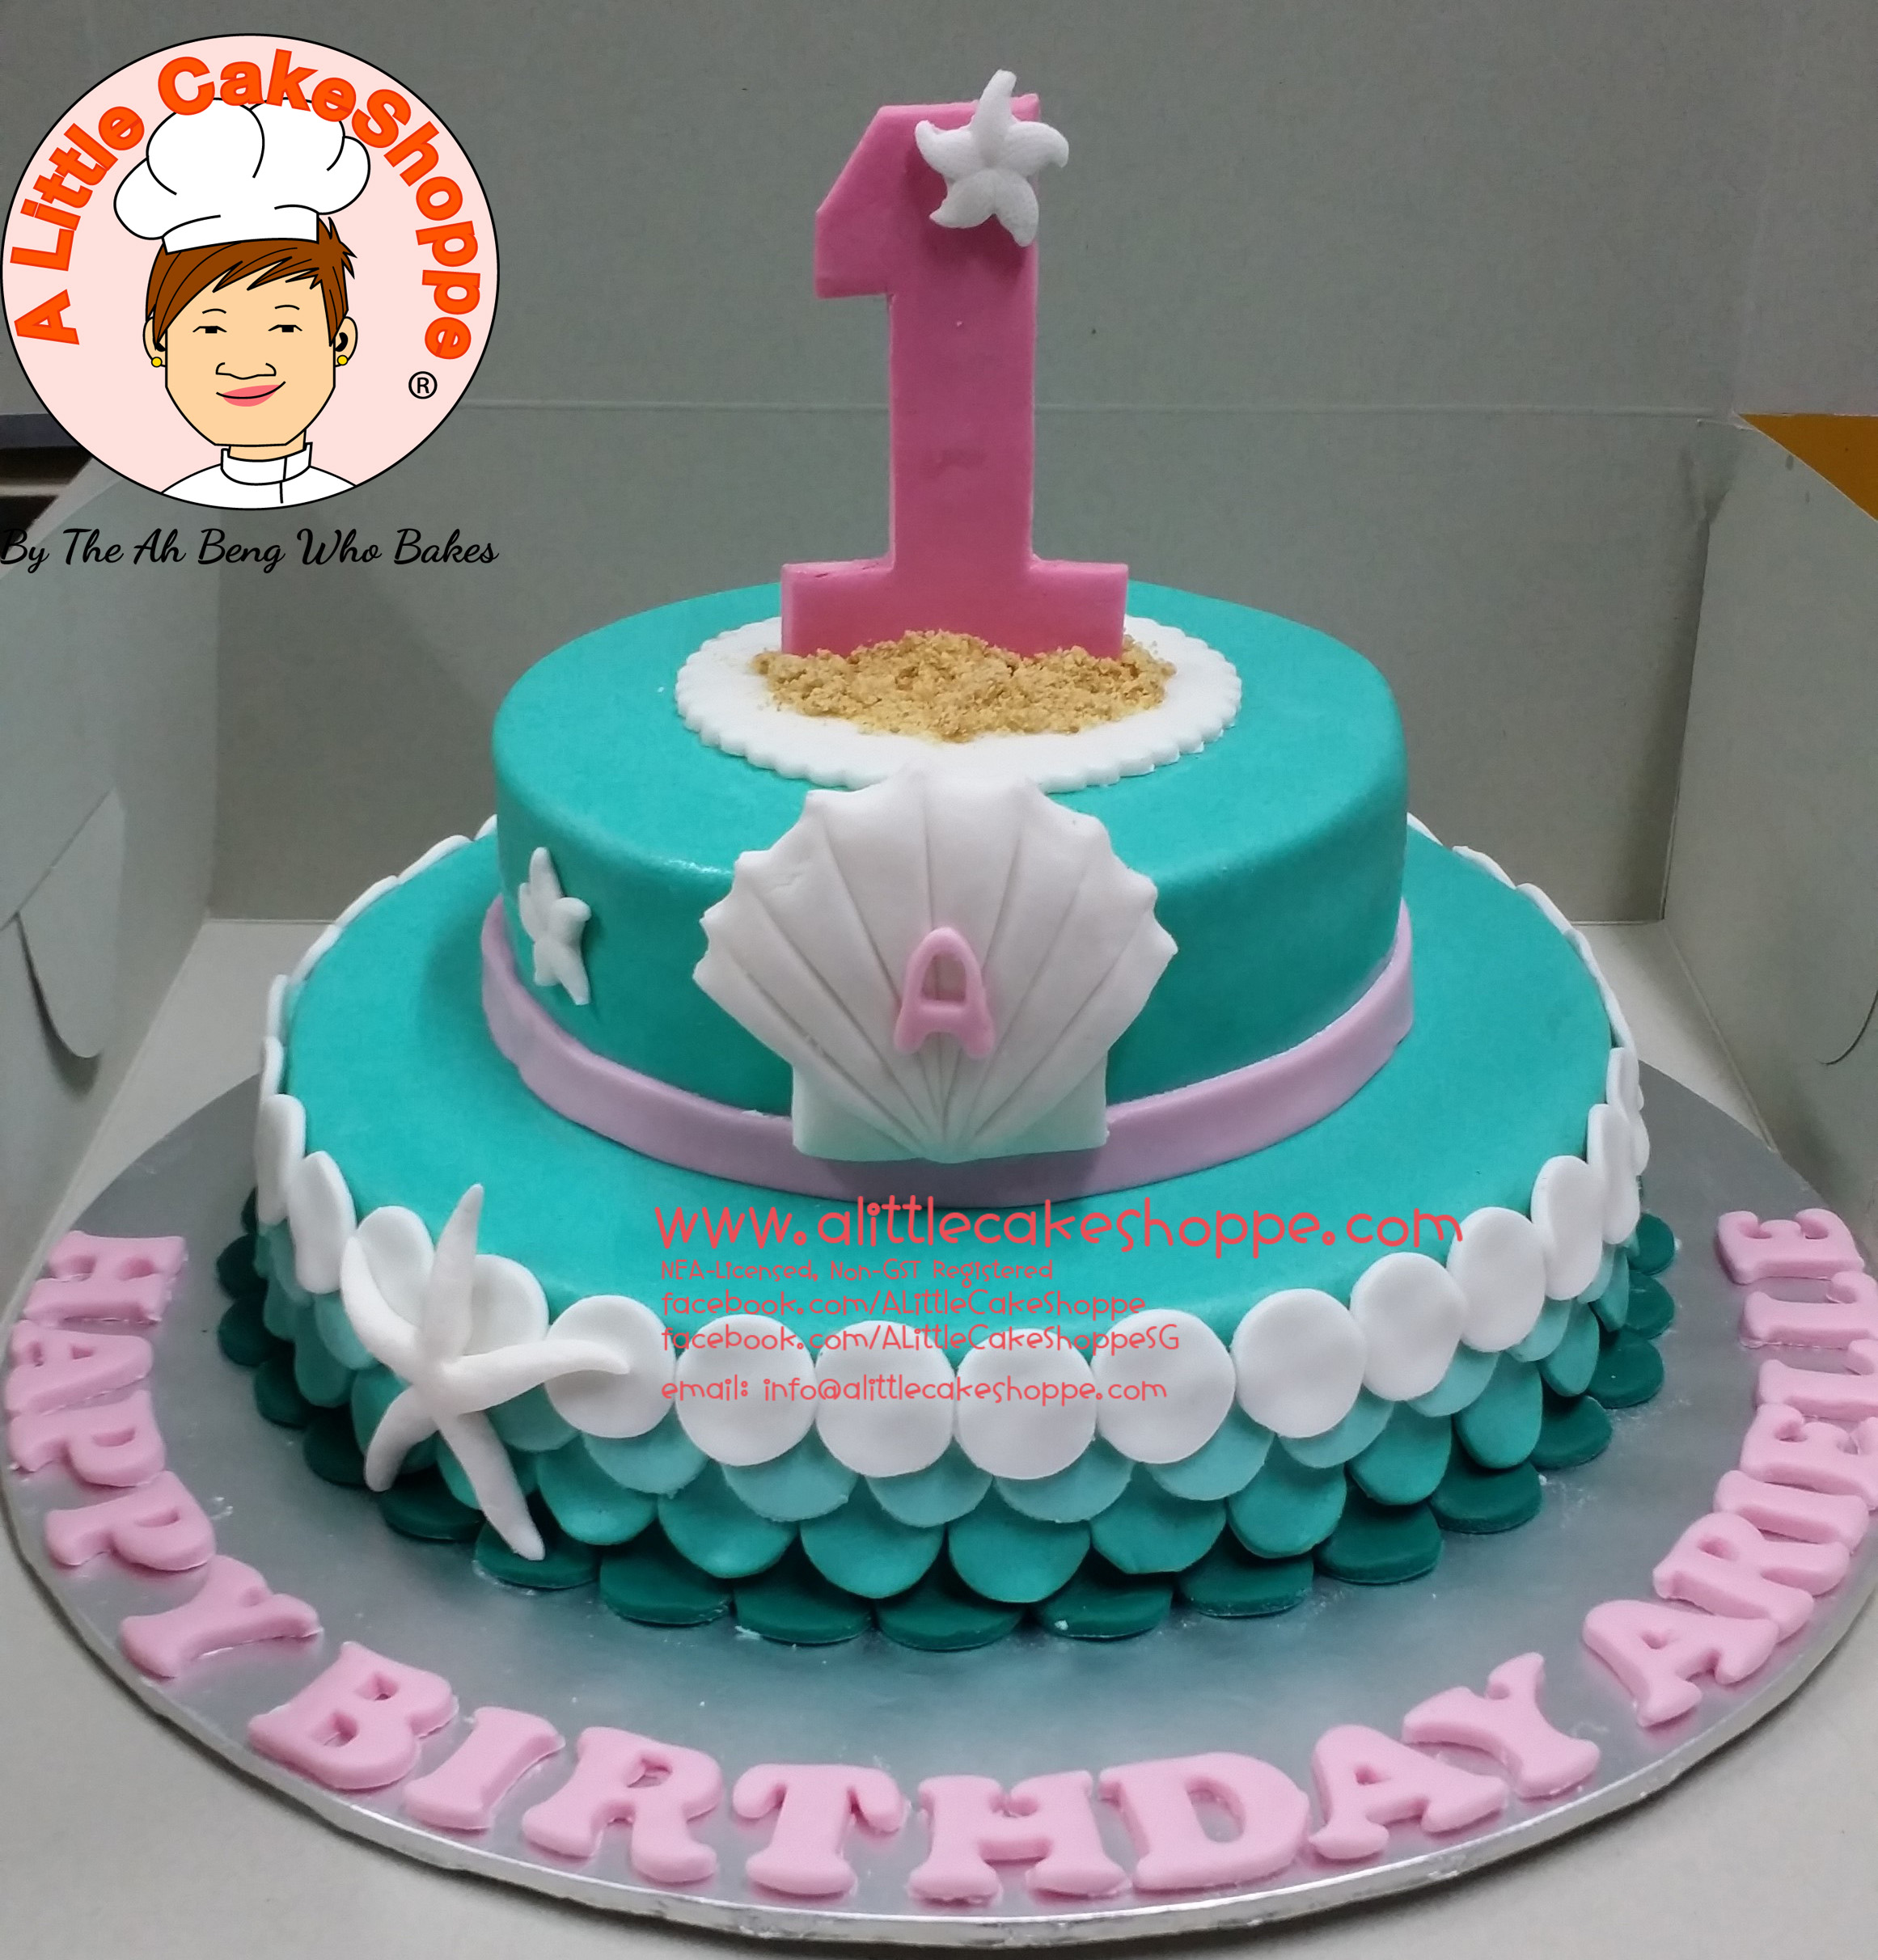 Best Customised Cake Singapore custom cake 2D 3D birthday cake cupcakes desserts wedding corporate events anniversary 1st birthday 21st birthday fondant fresh cream buttercream cakes alittlecakeshoppe a little cake shoppe compliments review singapore bakers SG cakeshop ah beng who bakes sea seashell